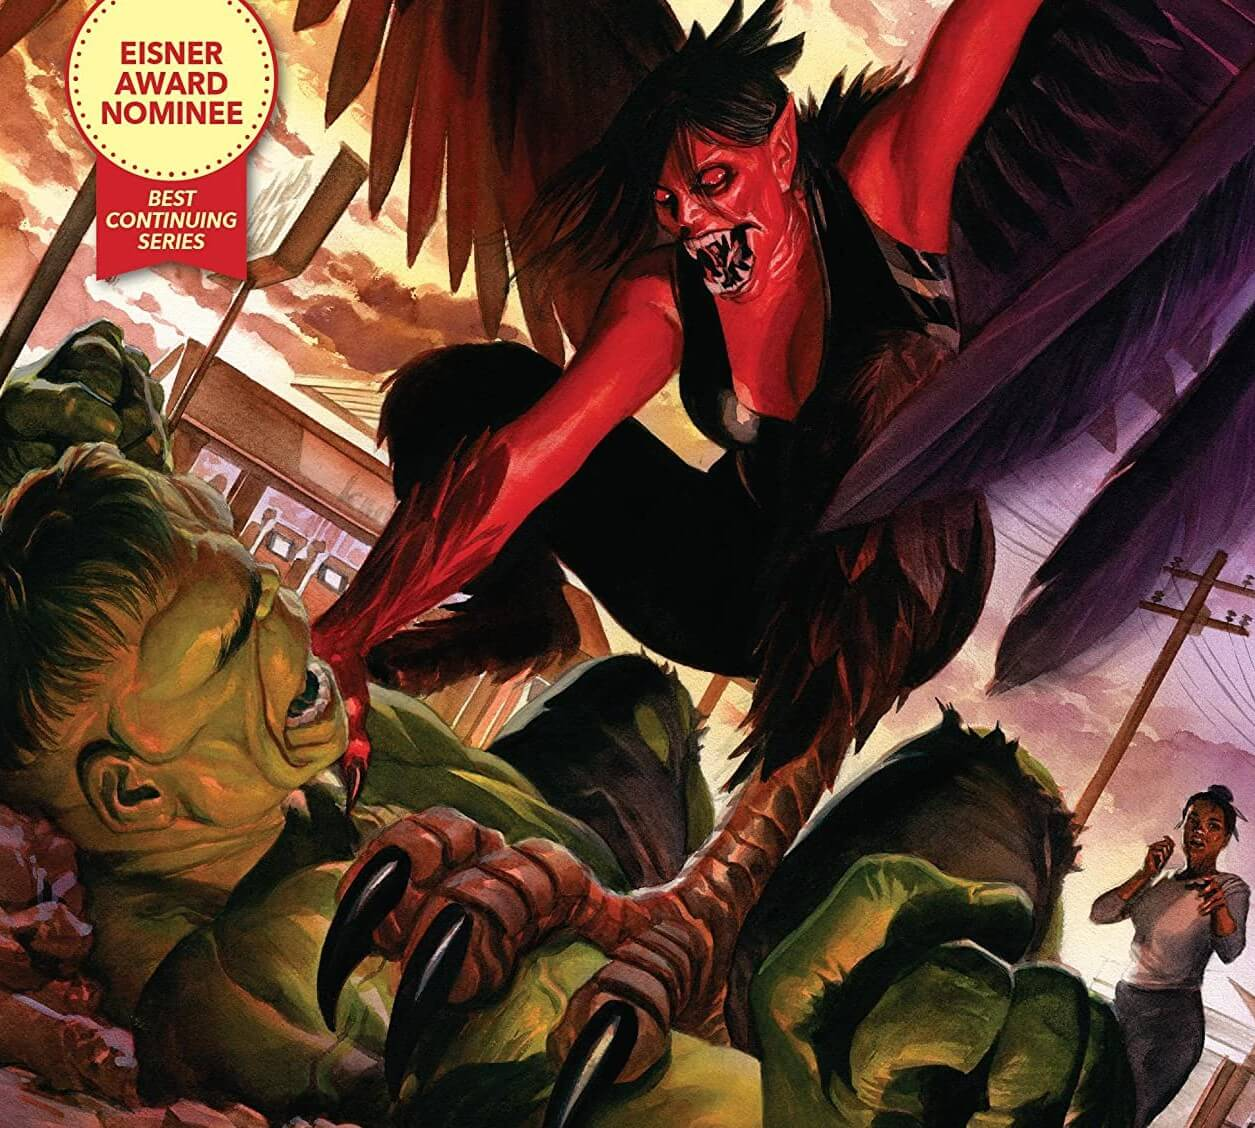 A female winged beast crouches over Hulk on the ground, prepared to attack, as an African American woman runs toward them.